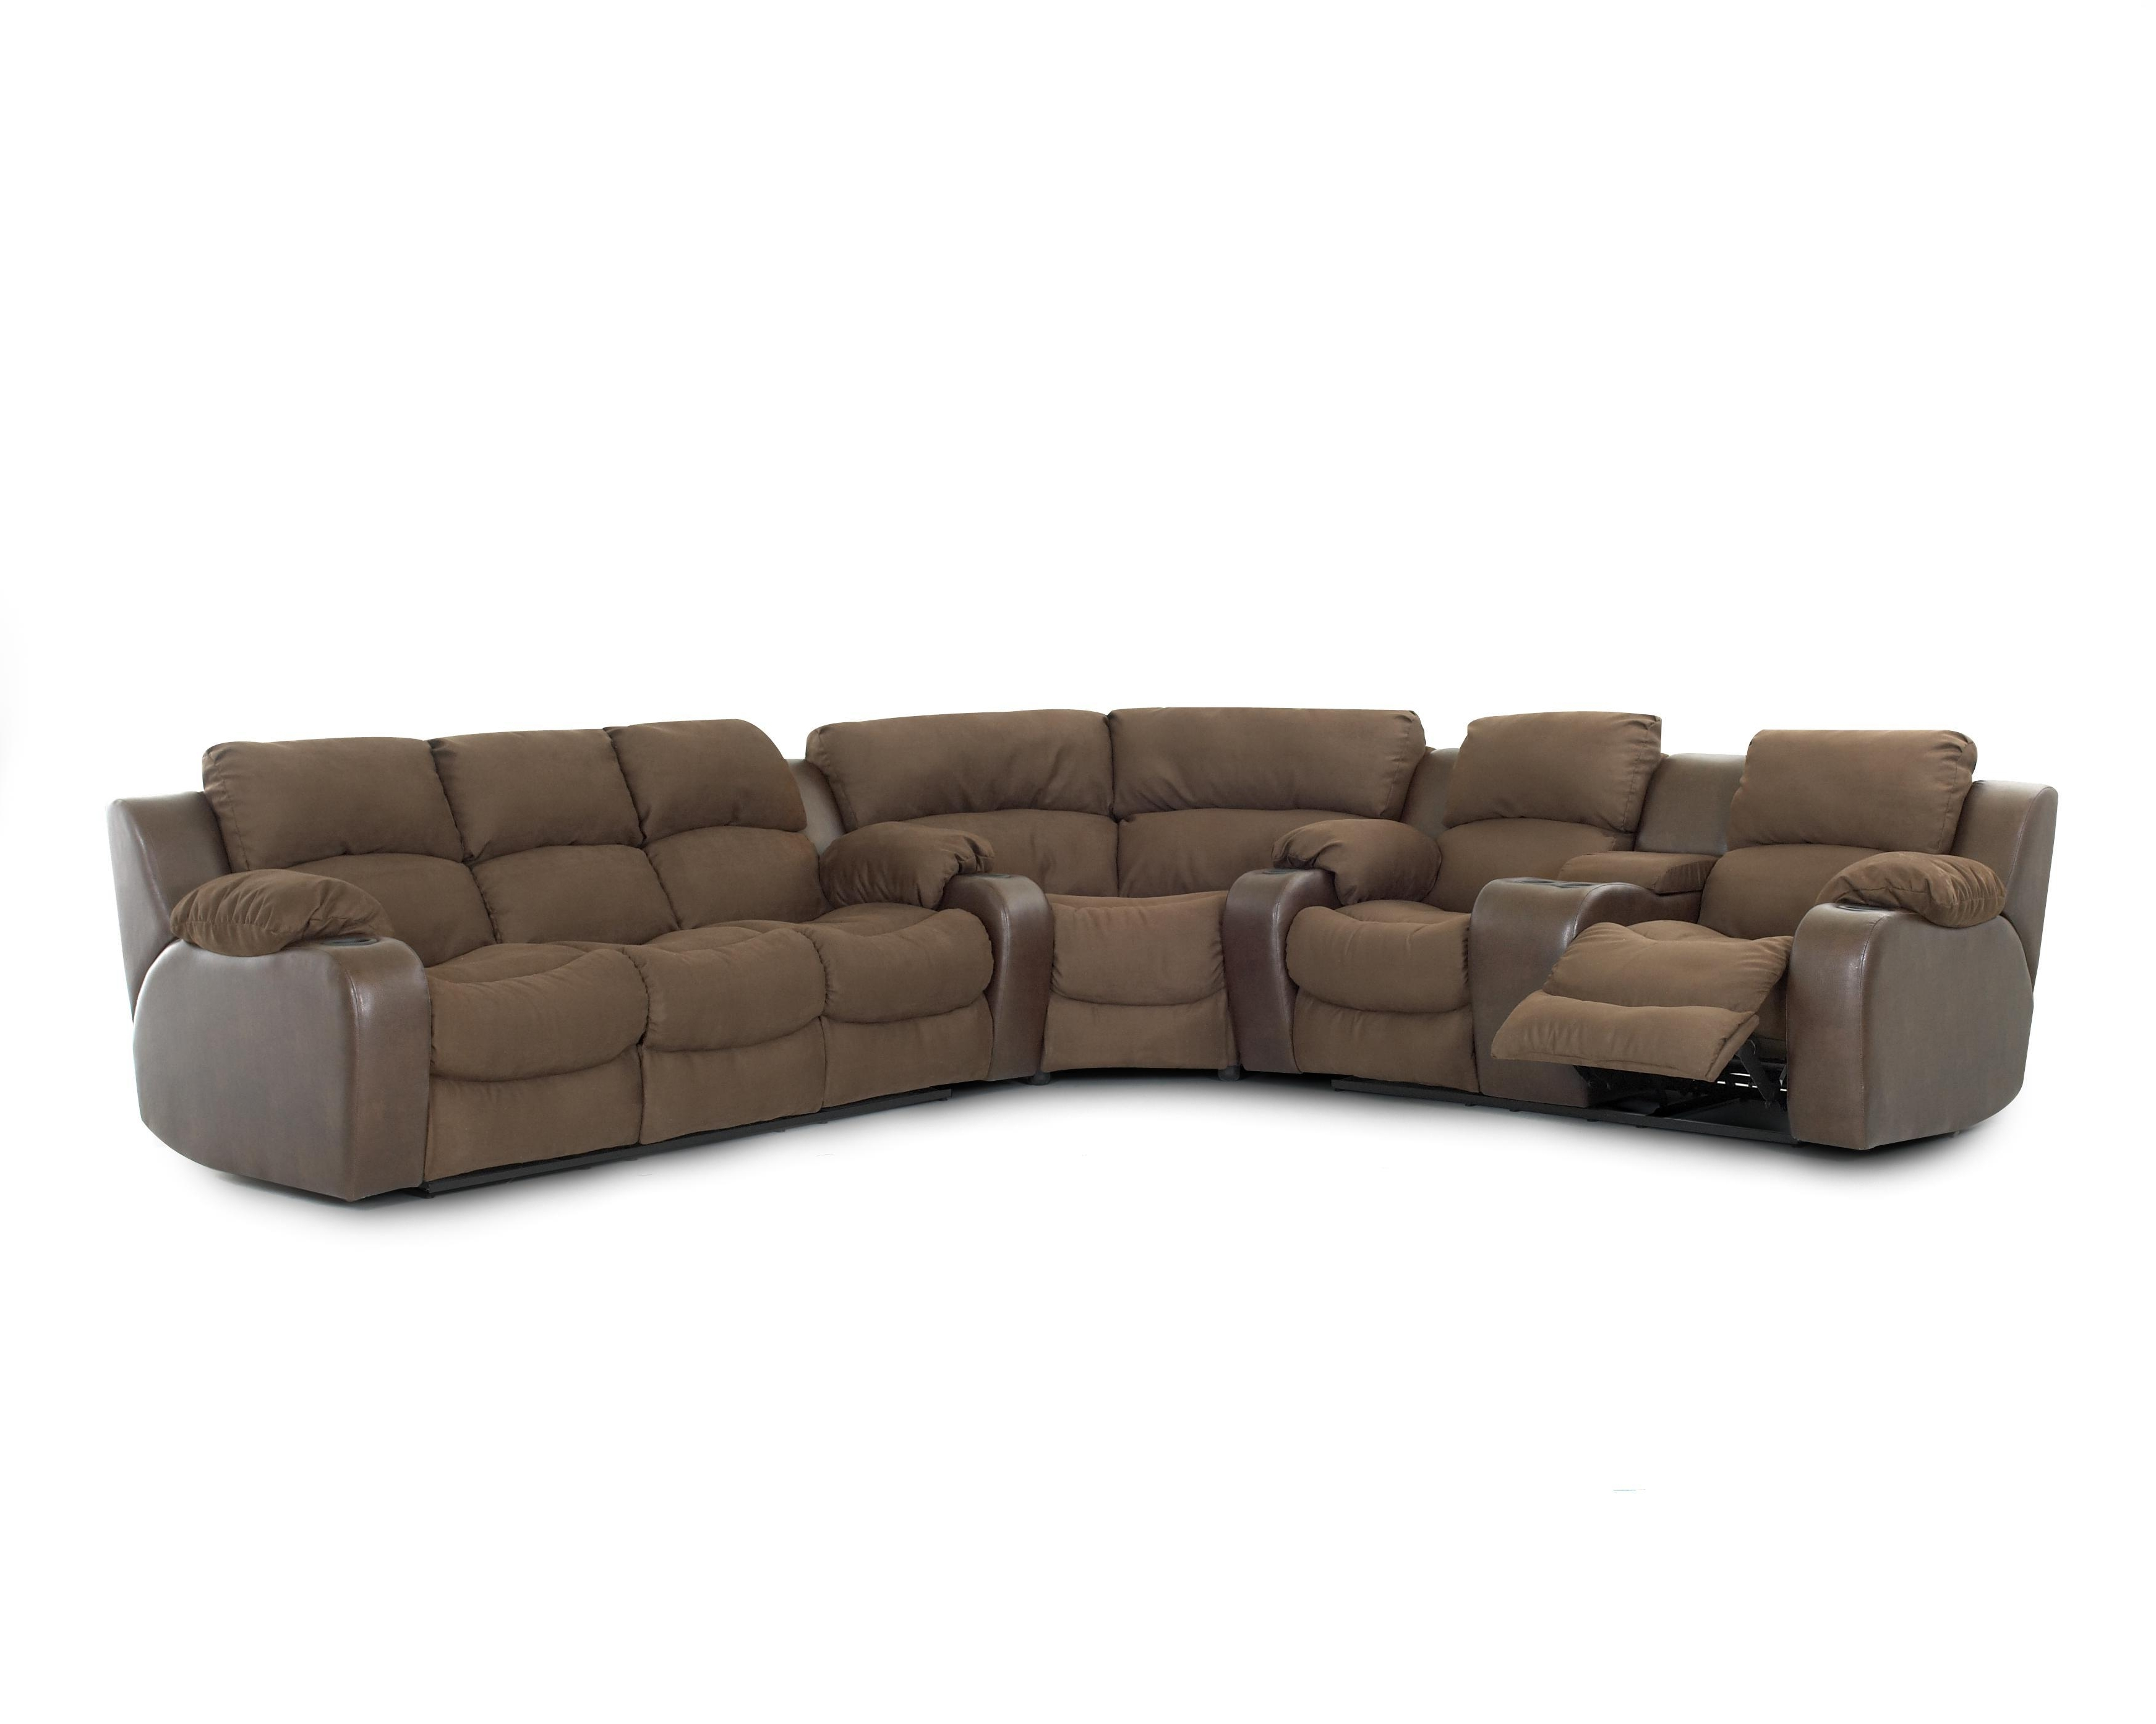 Sectional Sofas With Consoles Inside 2019 Sofas : L Shaped Couch Modular Couch Modular Sofa Grey Reclining (View 13 of 20)